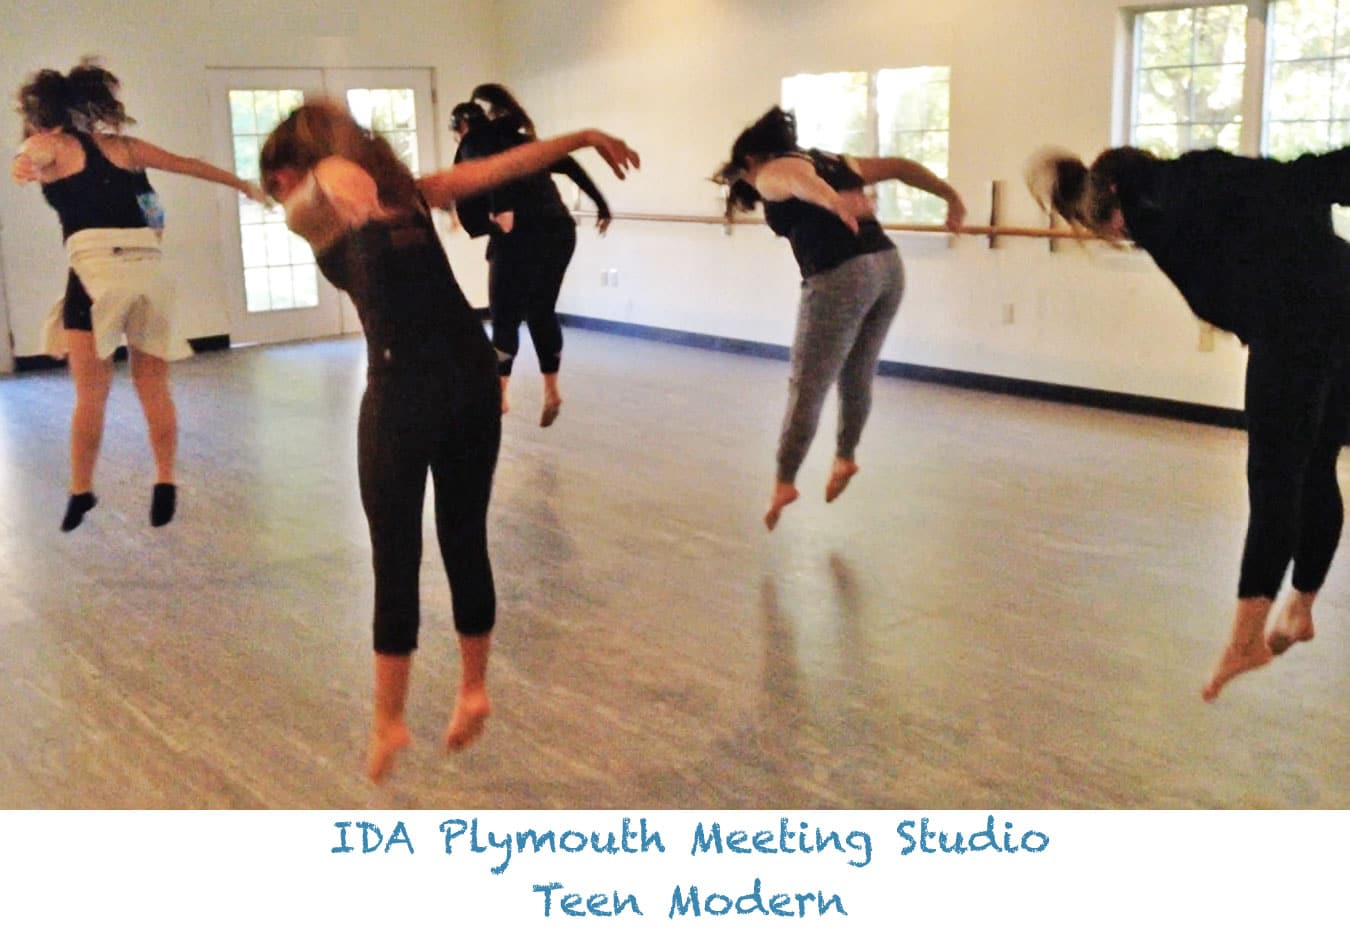 IDA, Institute of Dance Artistry Children's Plymouth Meeting PA studio provides Teen and Tween Dance classes including Modern classes. This IDA studio also services Whitemarsh Township, Conshohocken, Lafayette Hill, and Whitpain Township.